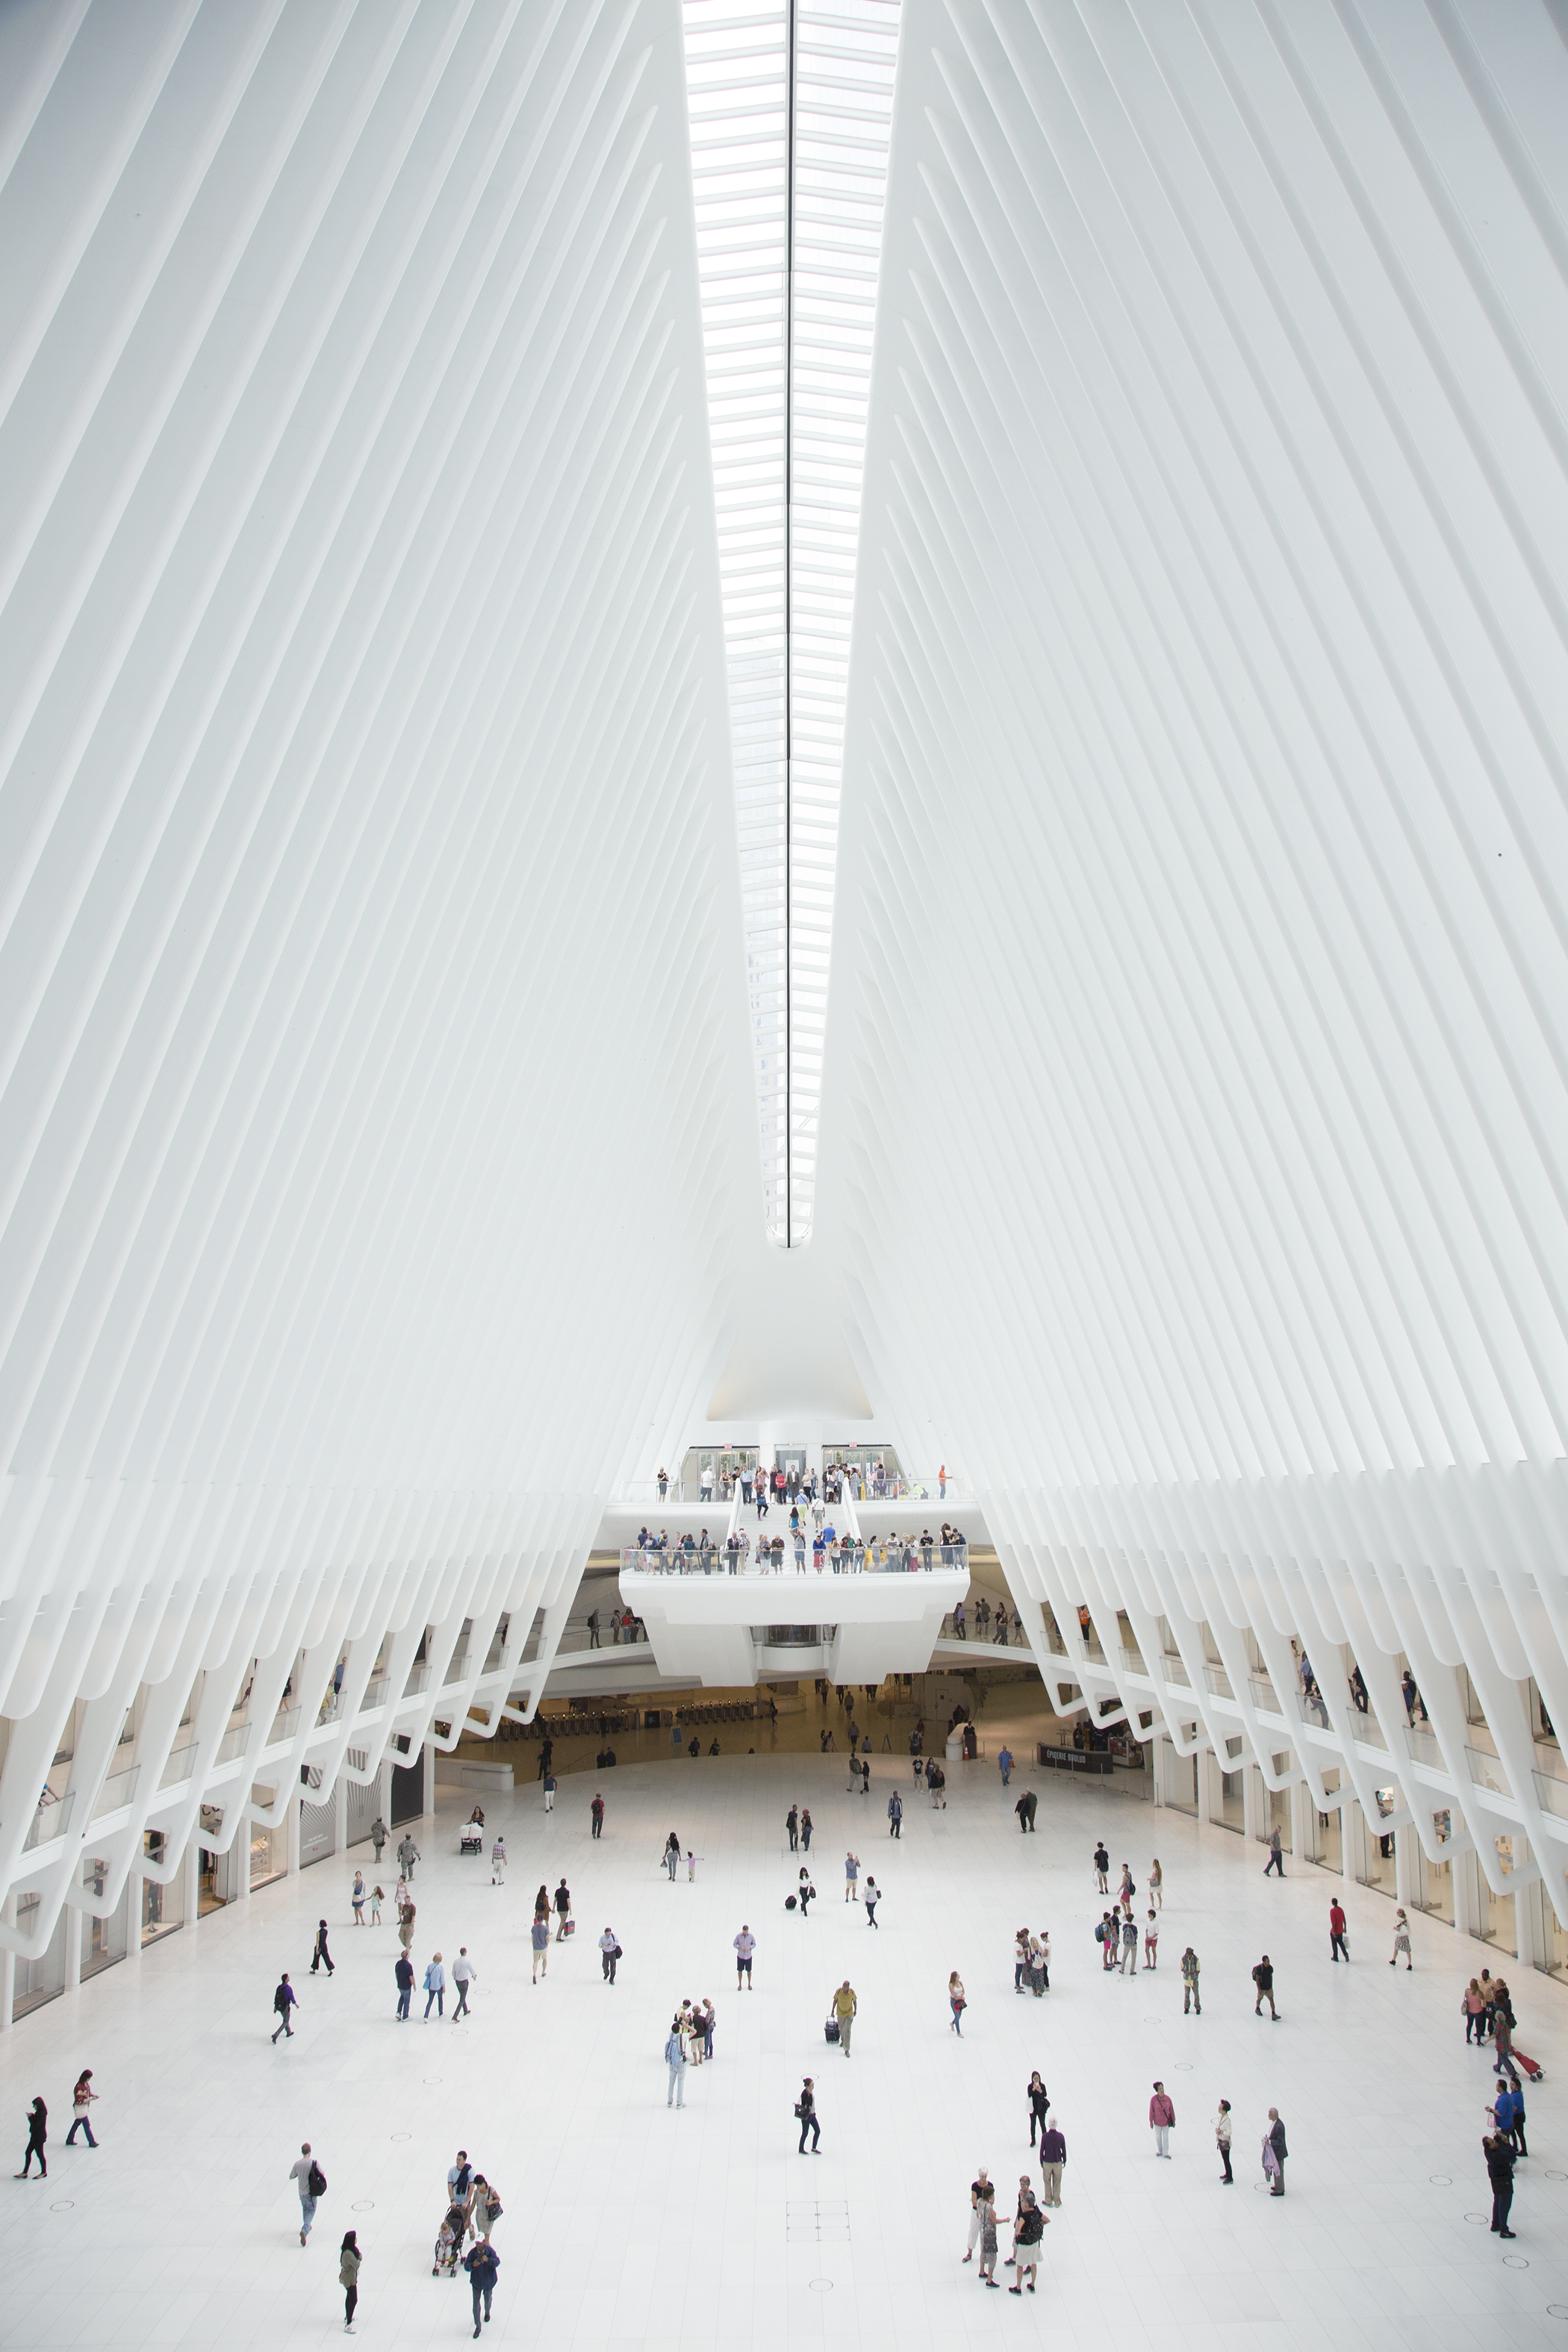 Santiago Calatrava's Oculus design inside of the World Trade Center transportation hub.